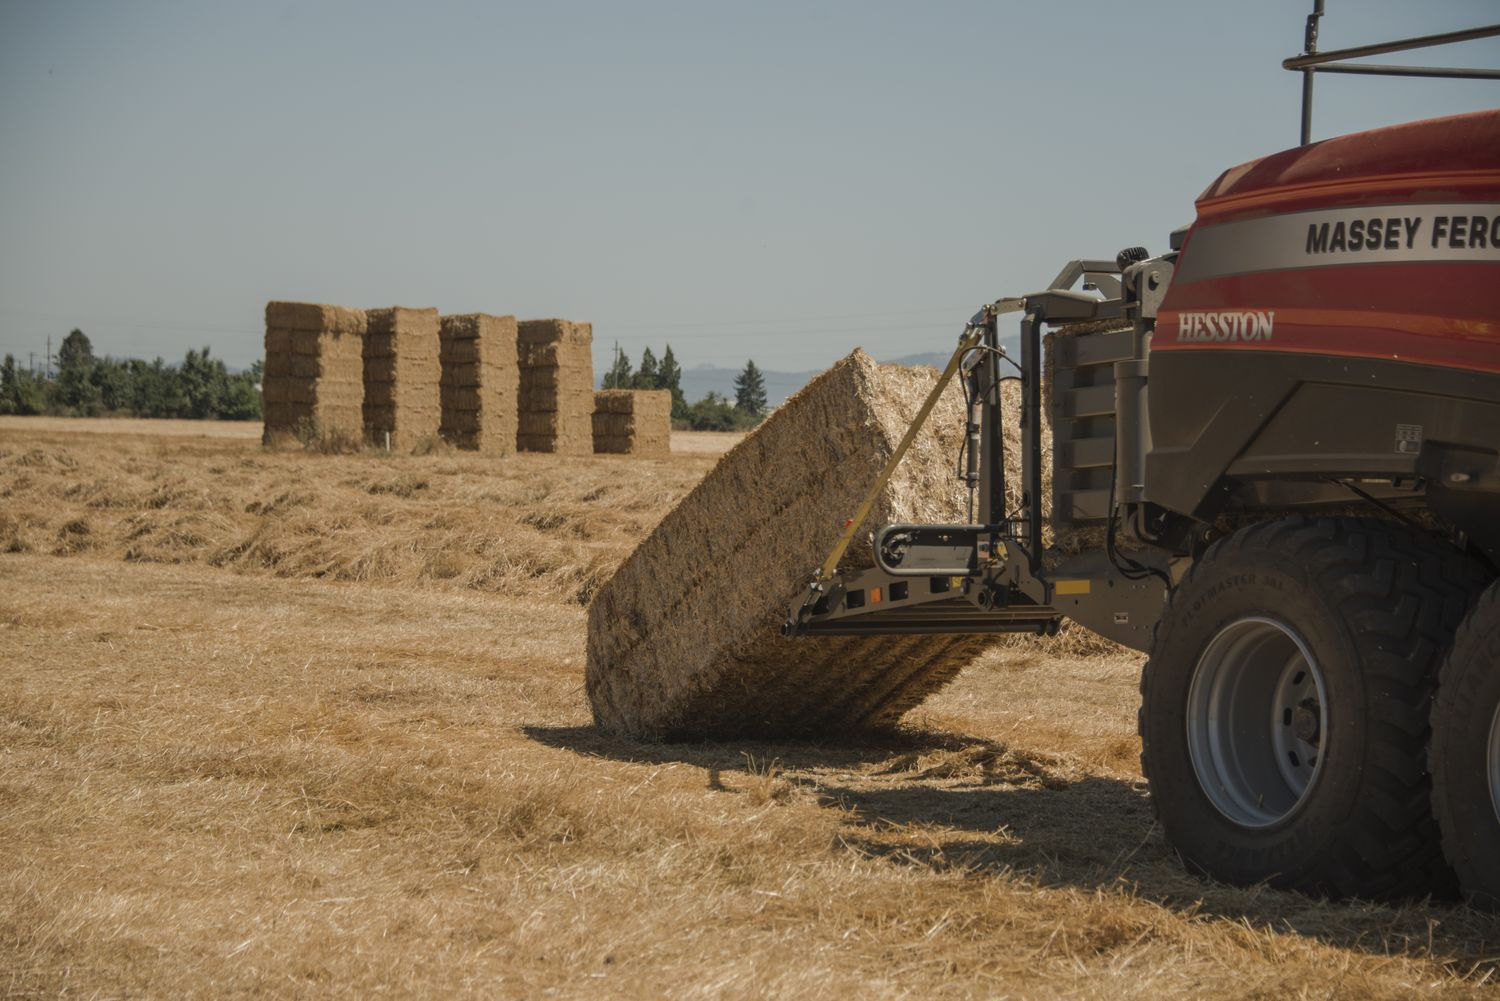 AGCO Launches Industry's First Class 8 Large Square Baler at